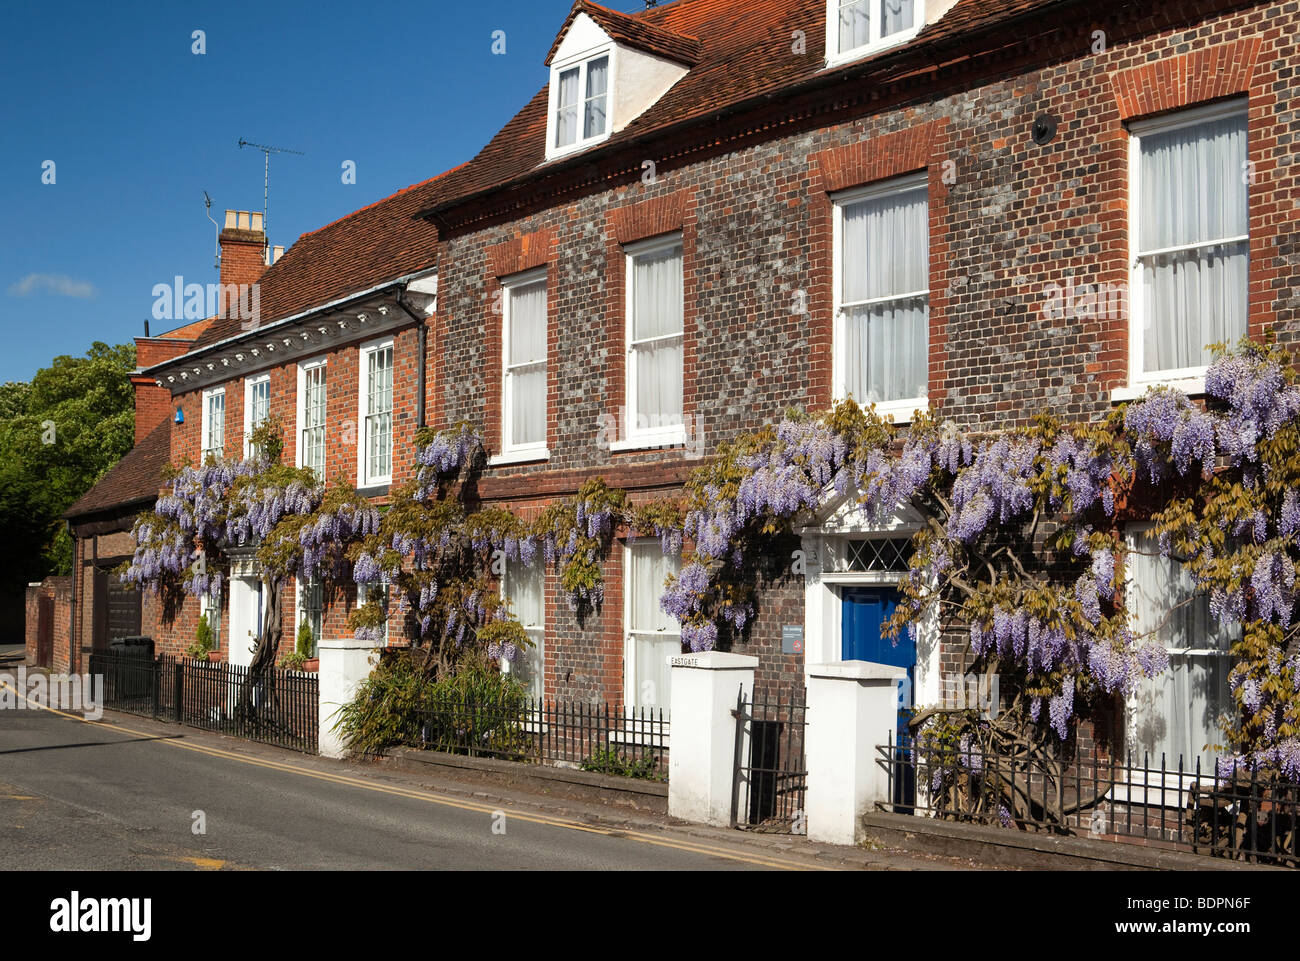 England, Berkshire, Cookham, Sutton Road, Wistaria Cottage, Wisteria hung front of Eastgate John Lewis building - Stock Image